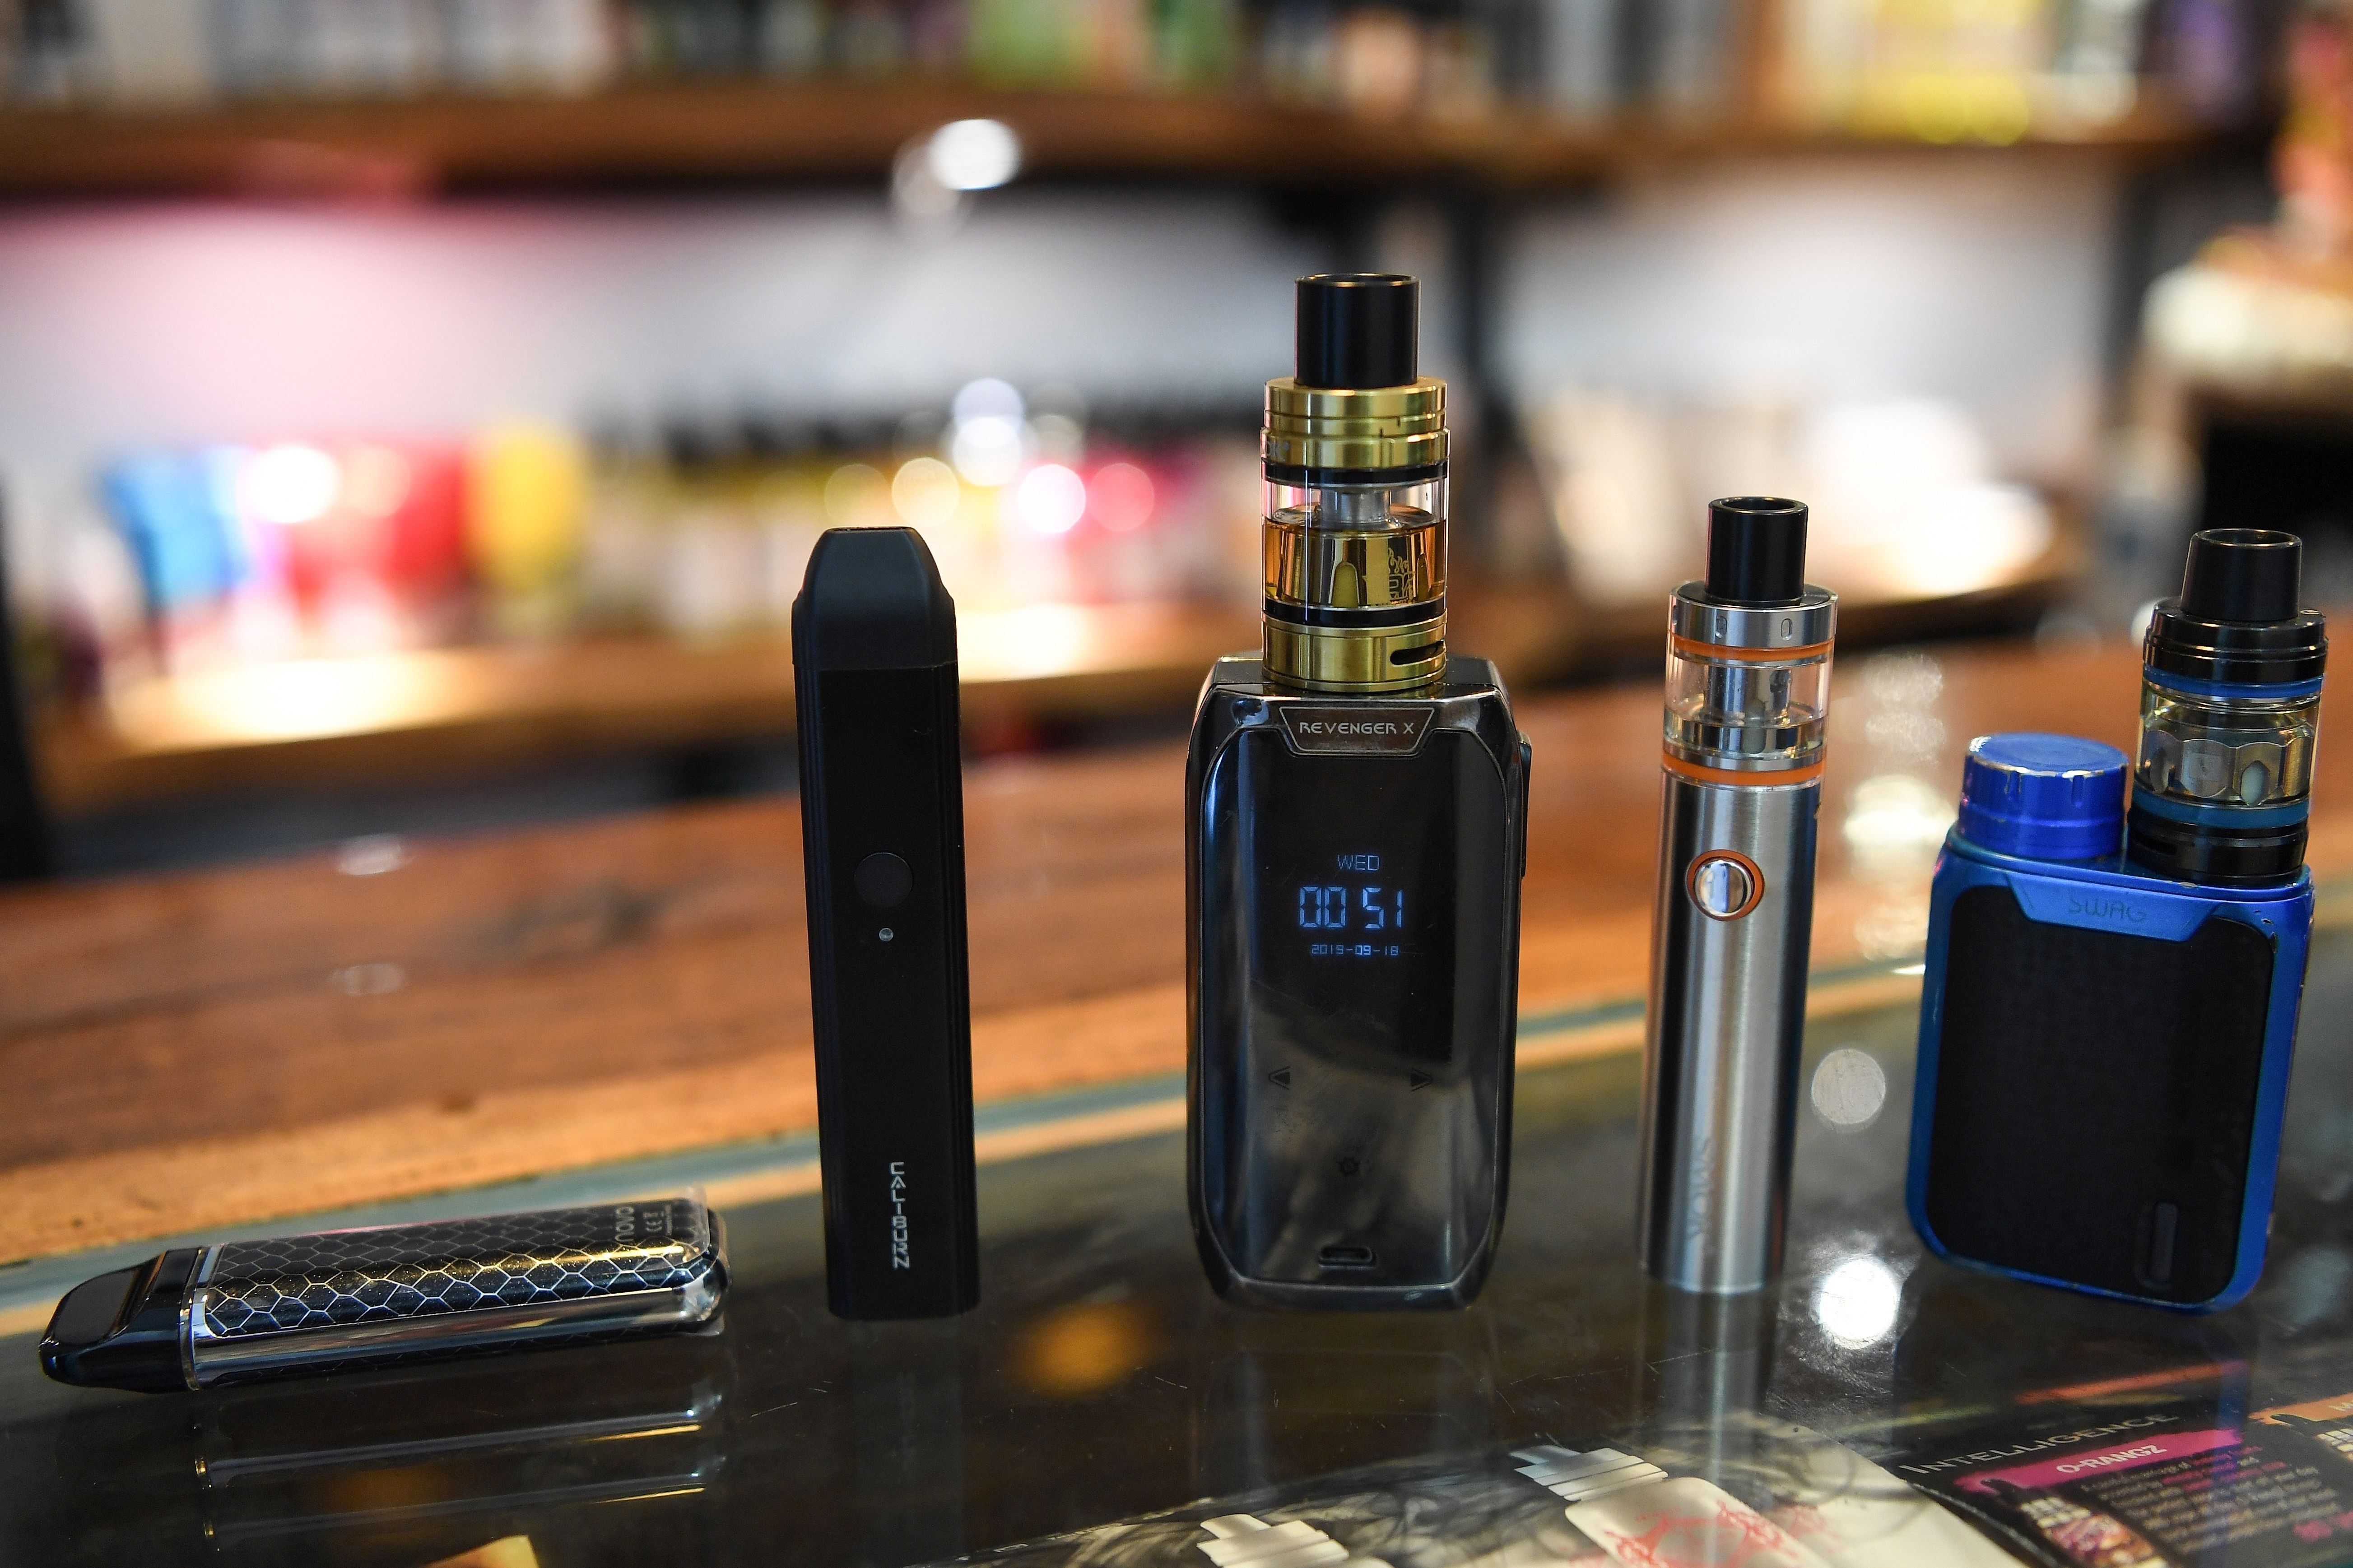 Electronic cigarette devices are pictured on display at a vaping shop in New Delhi on September 18, 2019. - India banned on September 18 the sale of electronic cigarettes, as a backlash gathers pace worldwide due to health concerns about a product promoted as less harmful than smoking tobacco. (Photo by Prakash SINGH / AFP) (Photo credit should read PRAKASH SINGH/AFP/Getty Images)